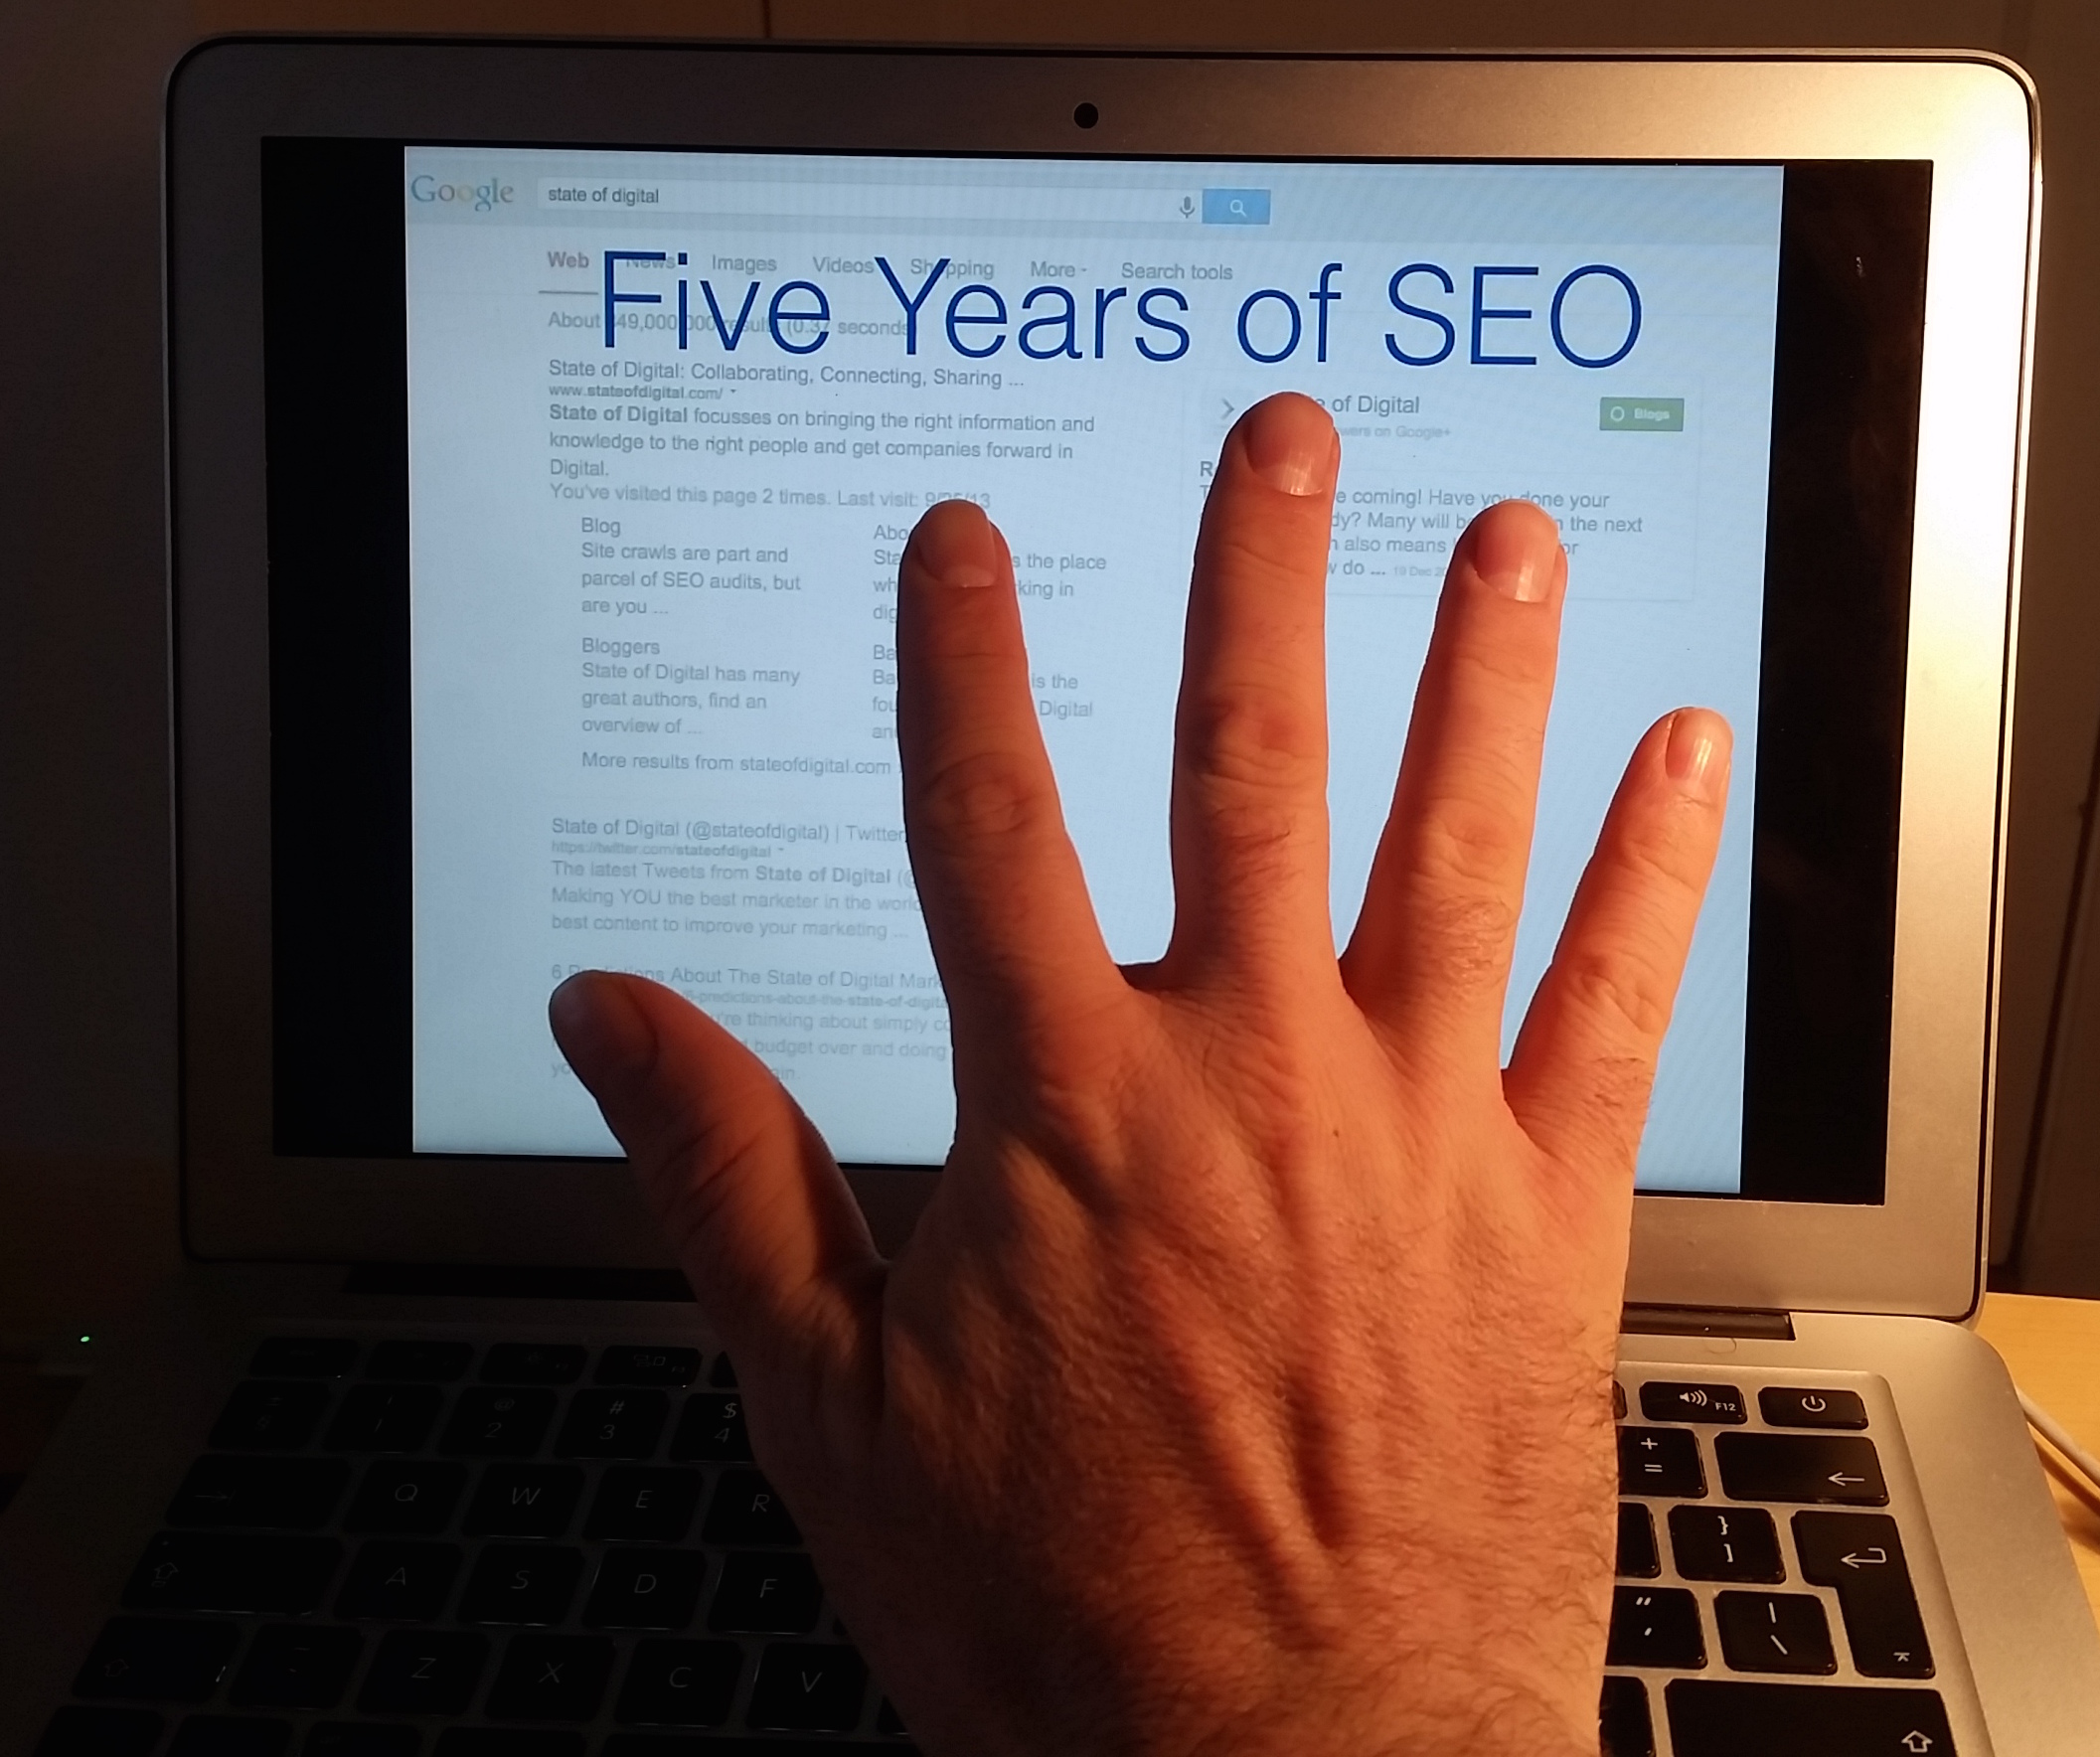 Five Years of SEO